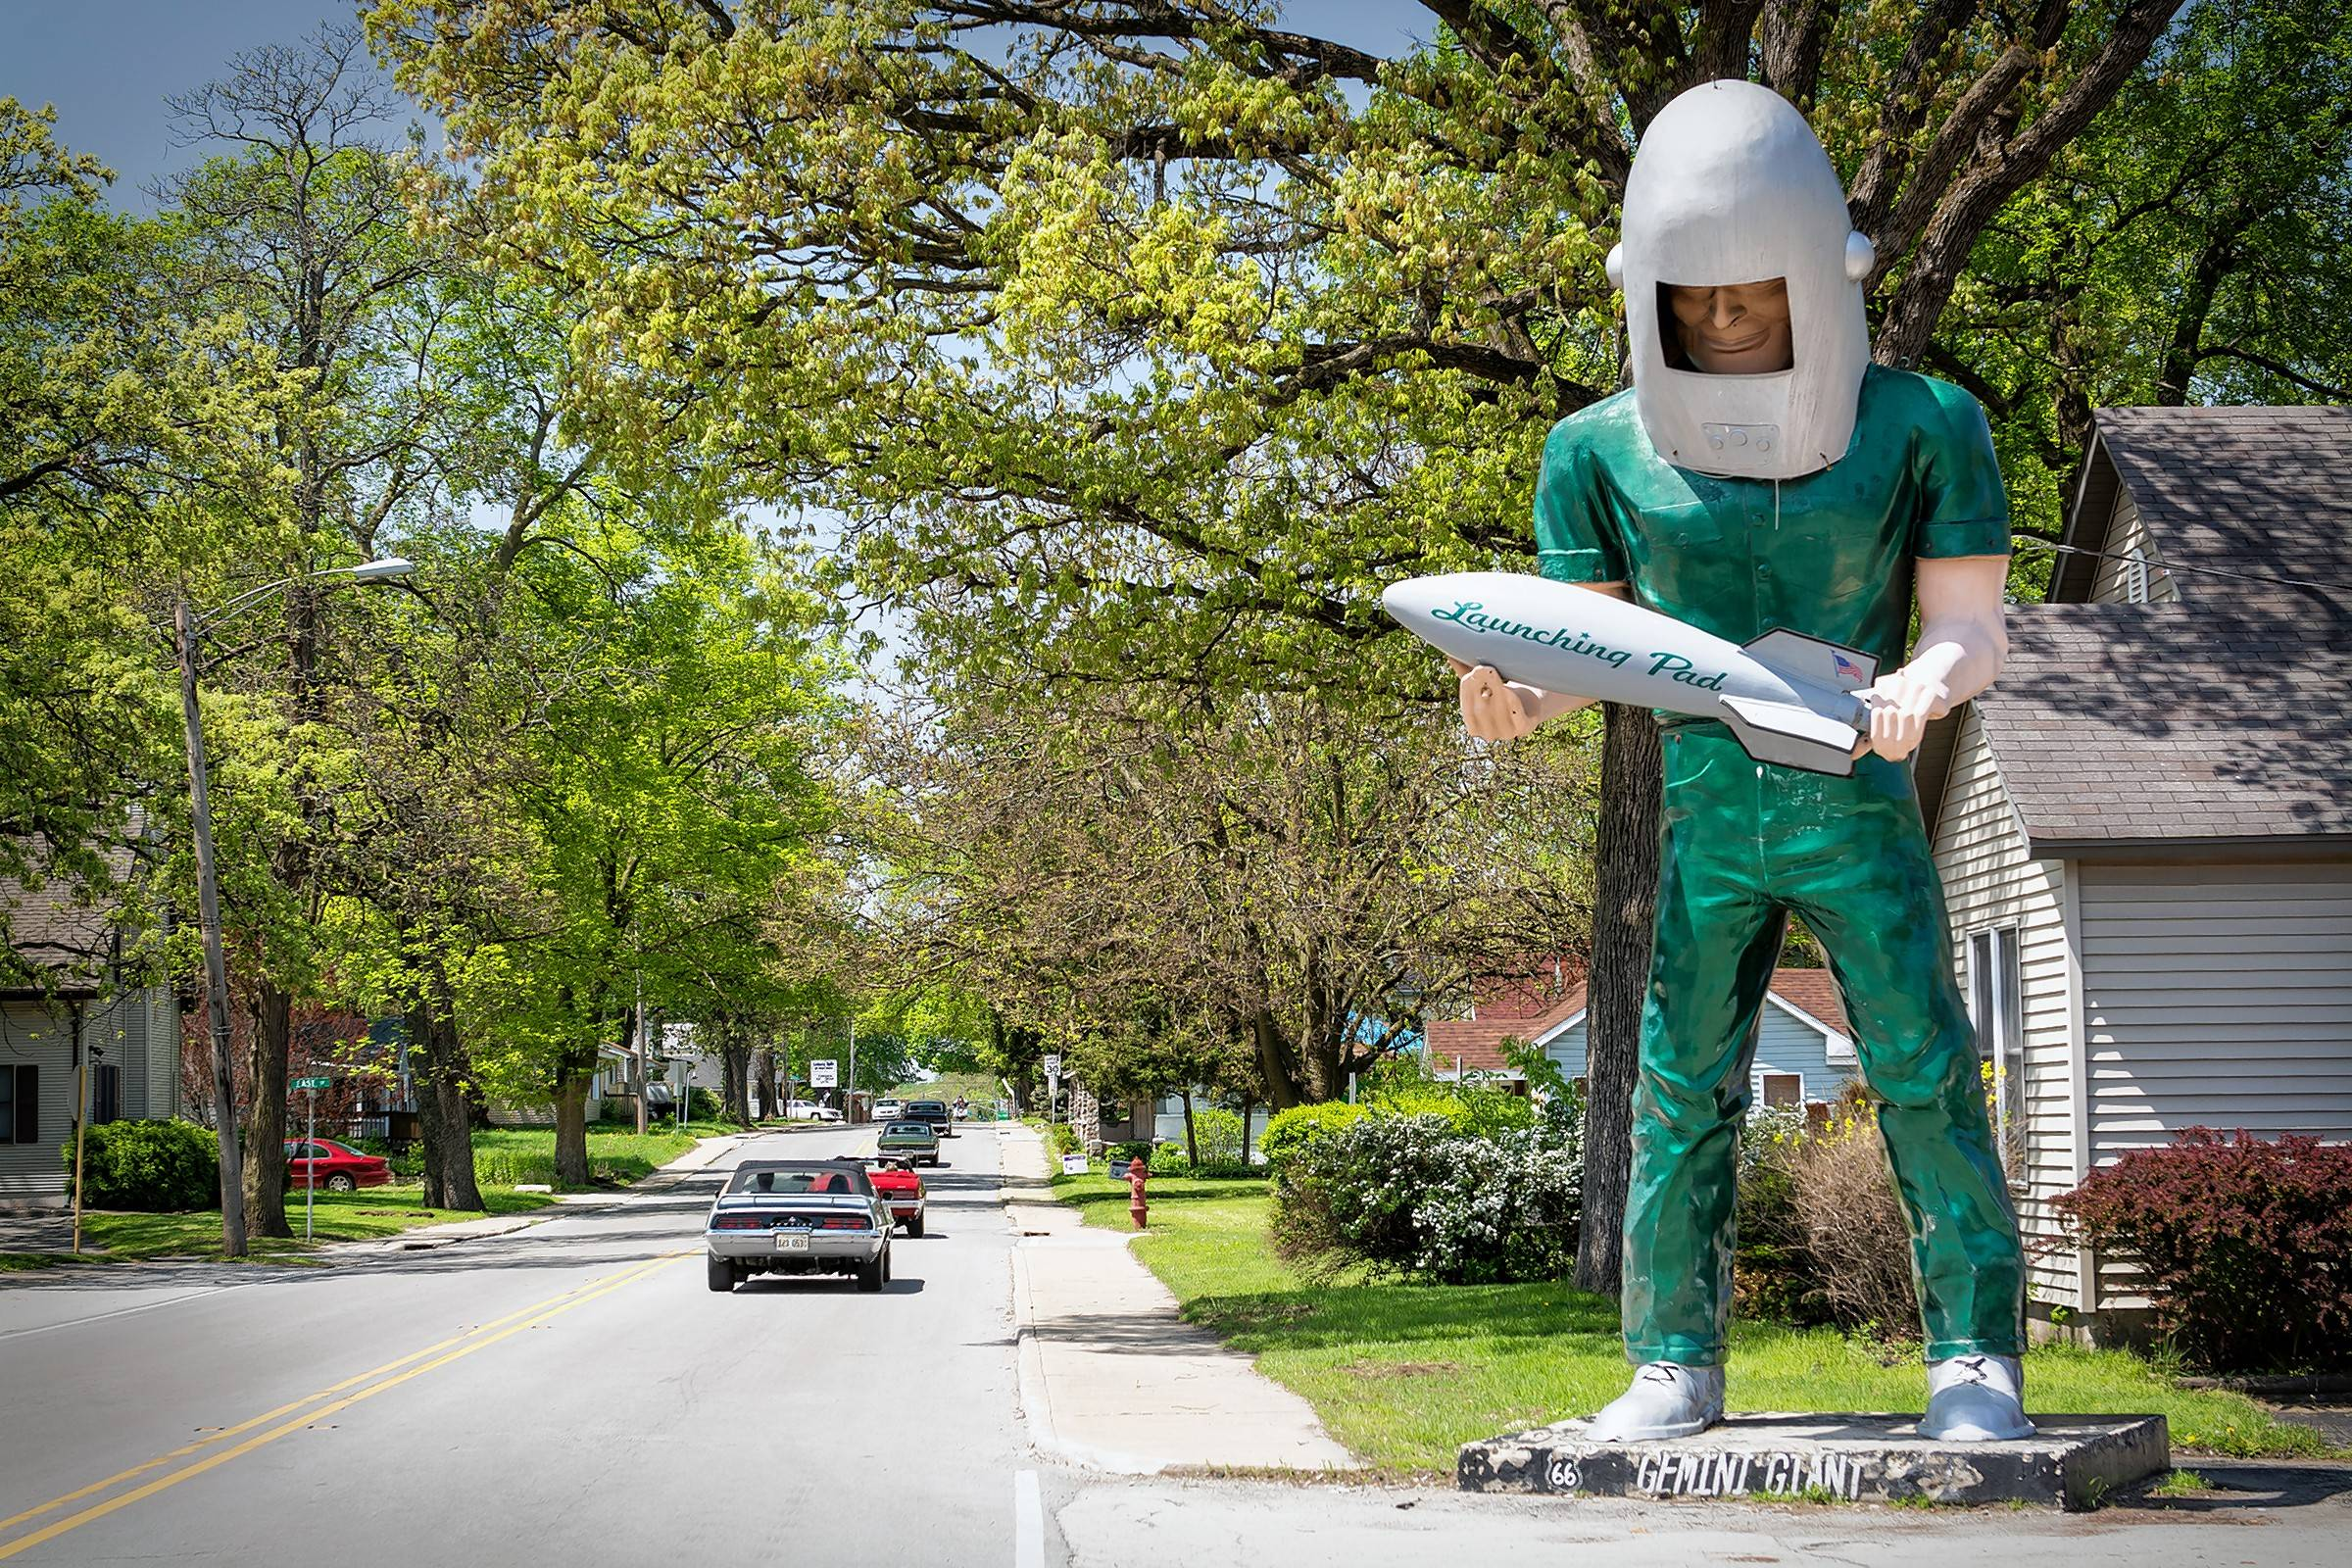 The Gemini Giant is one of the top Route 66 attractions in Illinois.